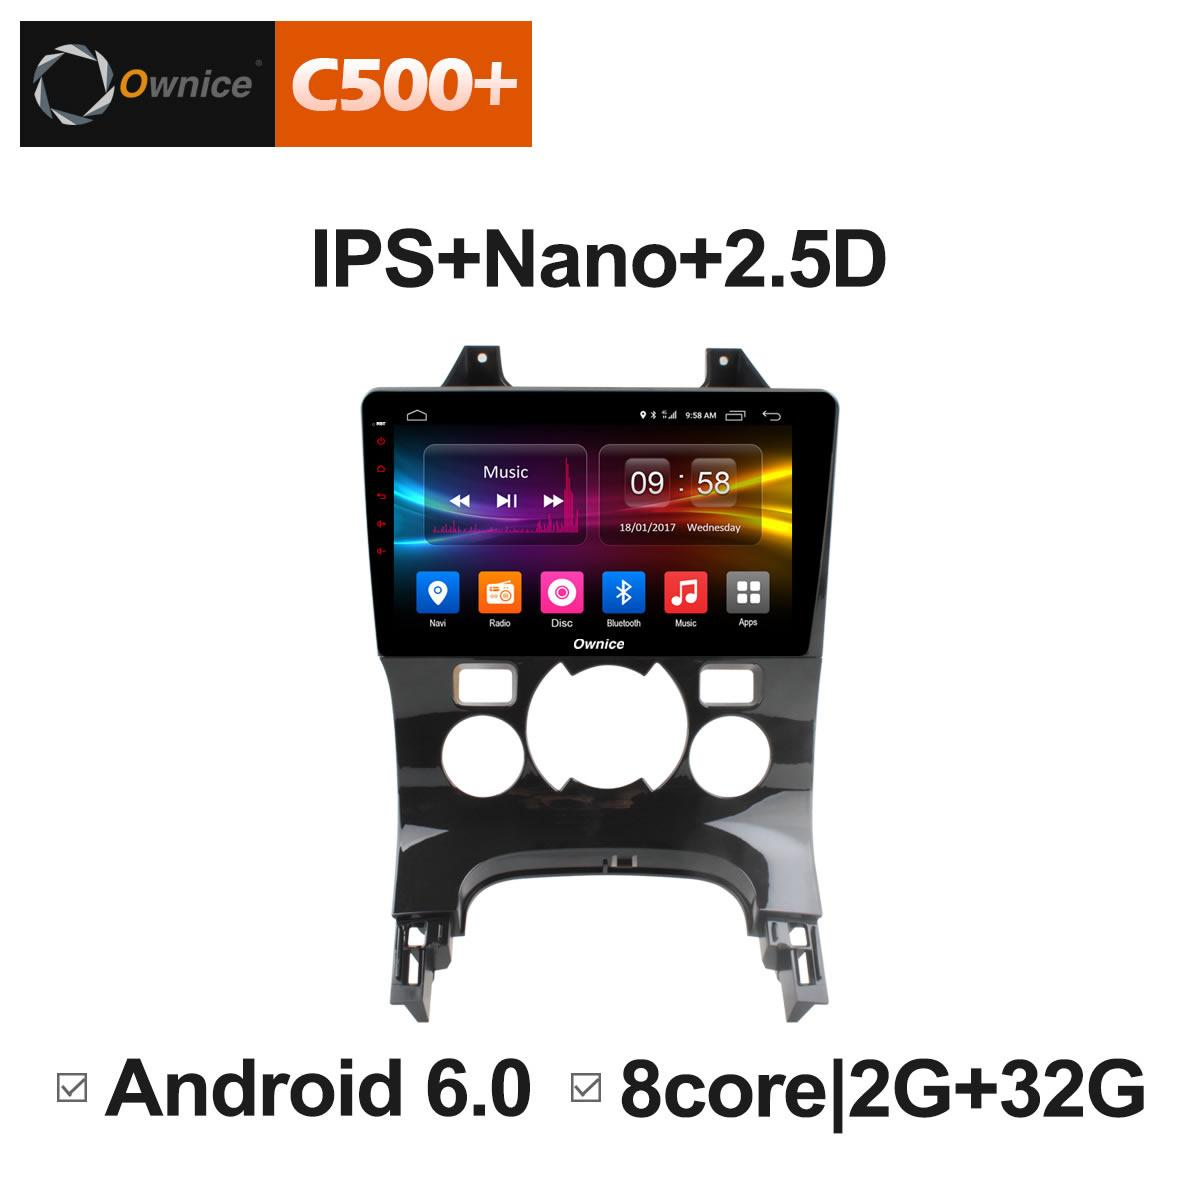 "9"" 2.5D Nano IPS Screen Android Octa Core/4G LTE Car Media Player With GPS RDS Radio/Bluetooth For Peugeot 3008 2013 #5901"